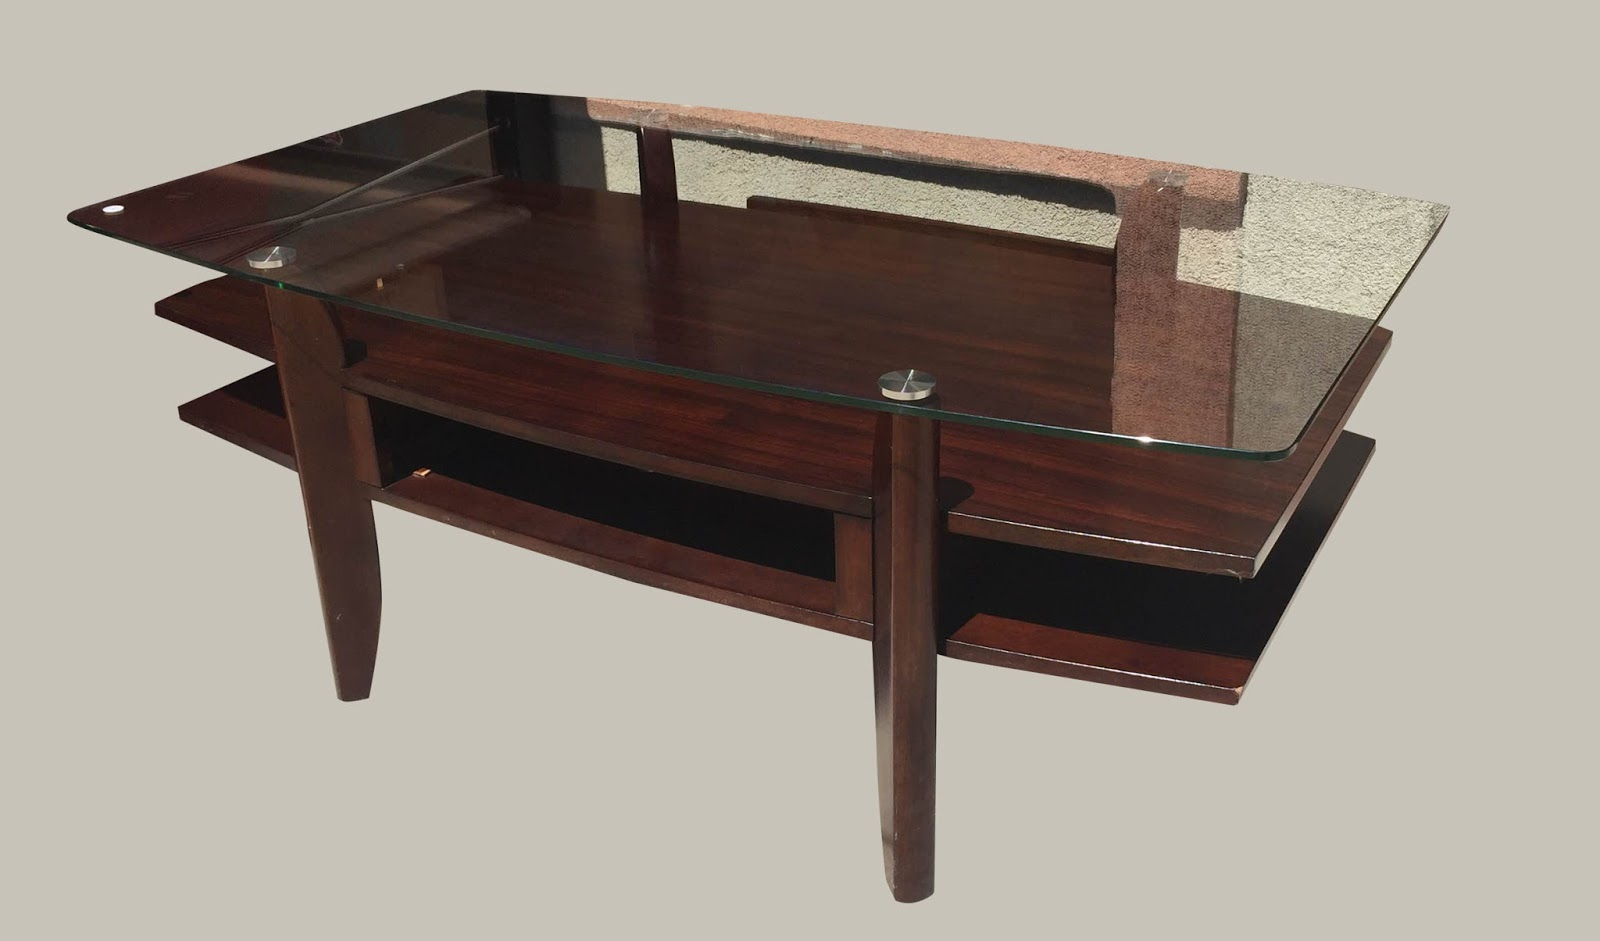 Uhuru furniture collectibles 3 level coffee table with for 2 level glass coffee table